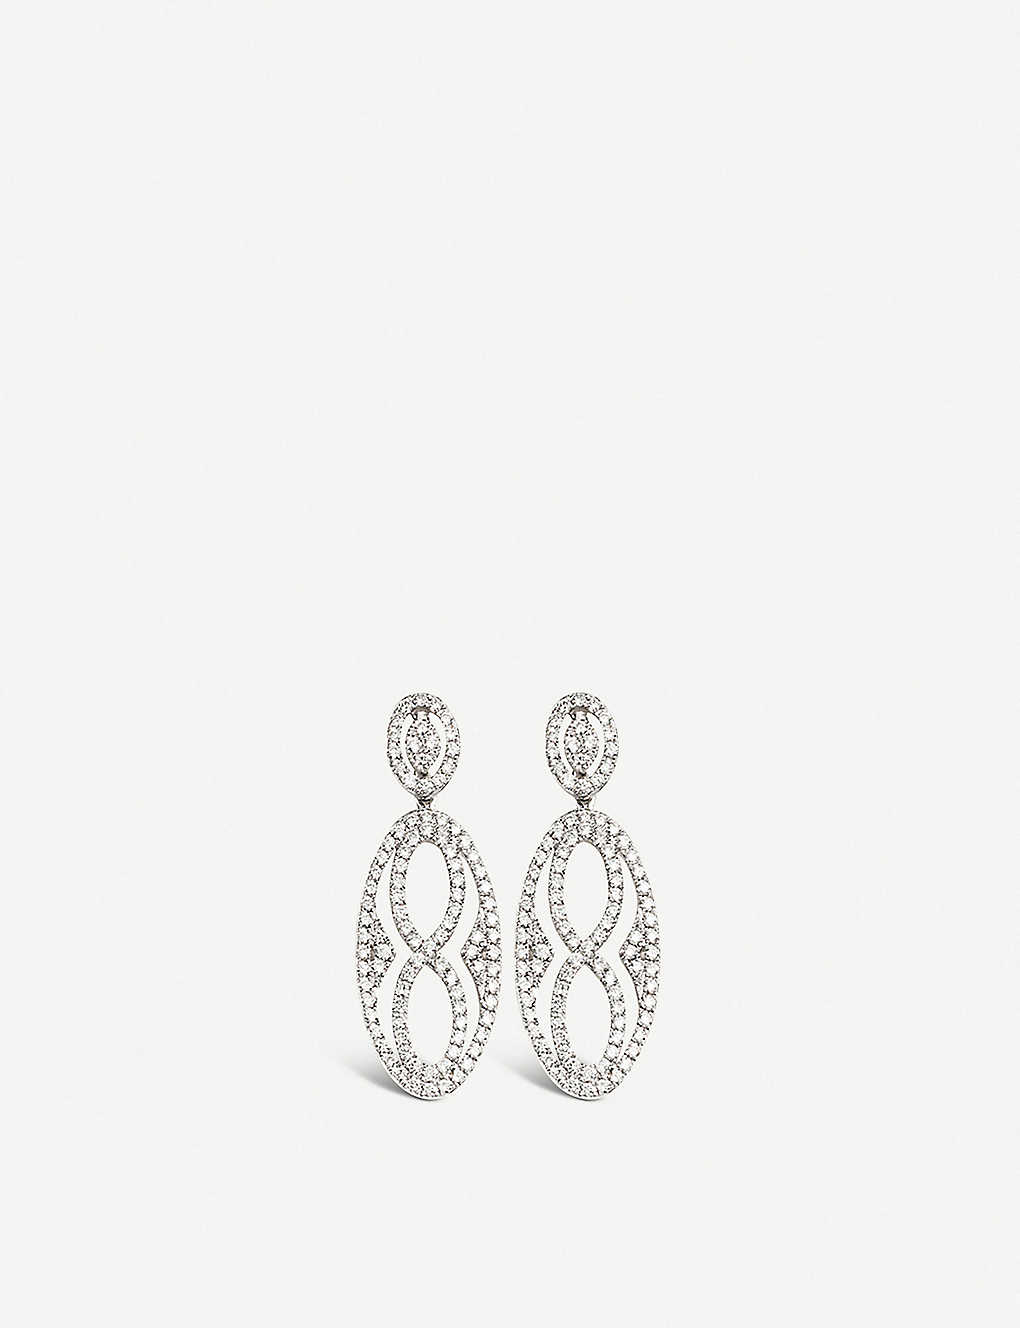 BUCHERER FINE JEWELLERY: Vivelle 18ct white-gold and diamond earrings